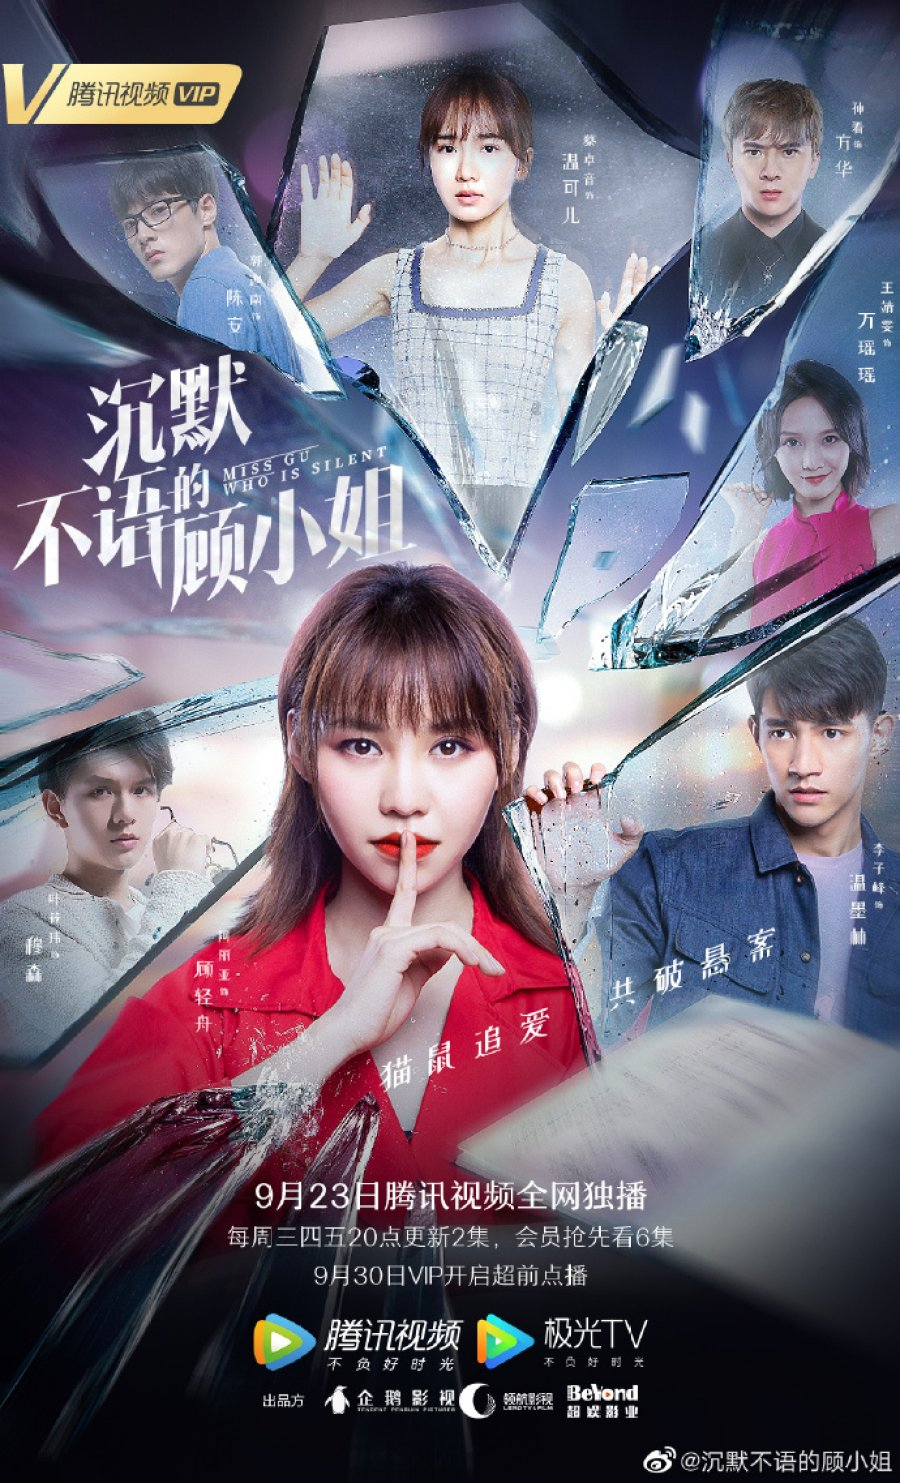 Miss Gu Who is Silent (2020) : Sinopsis dan Review